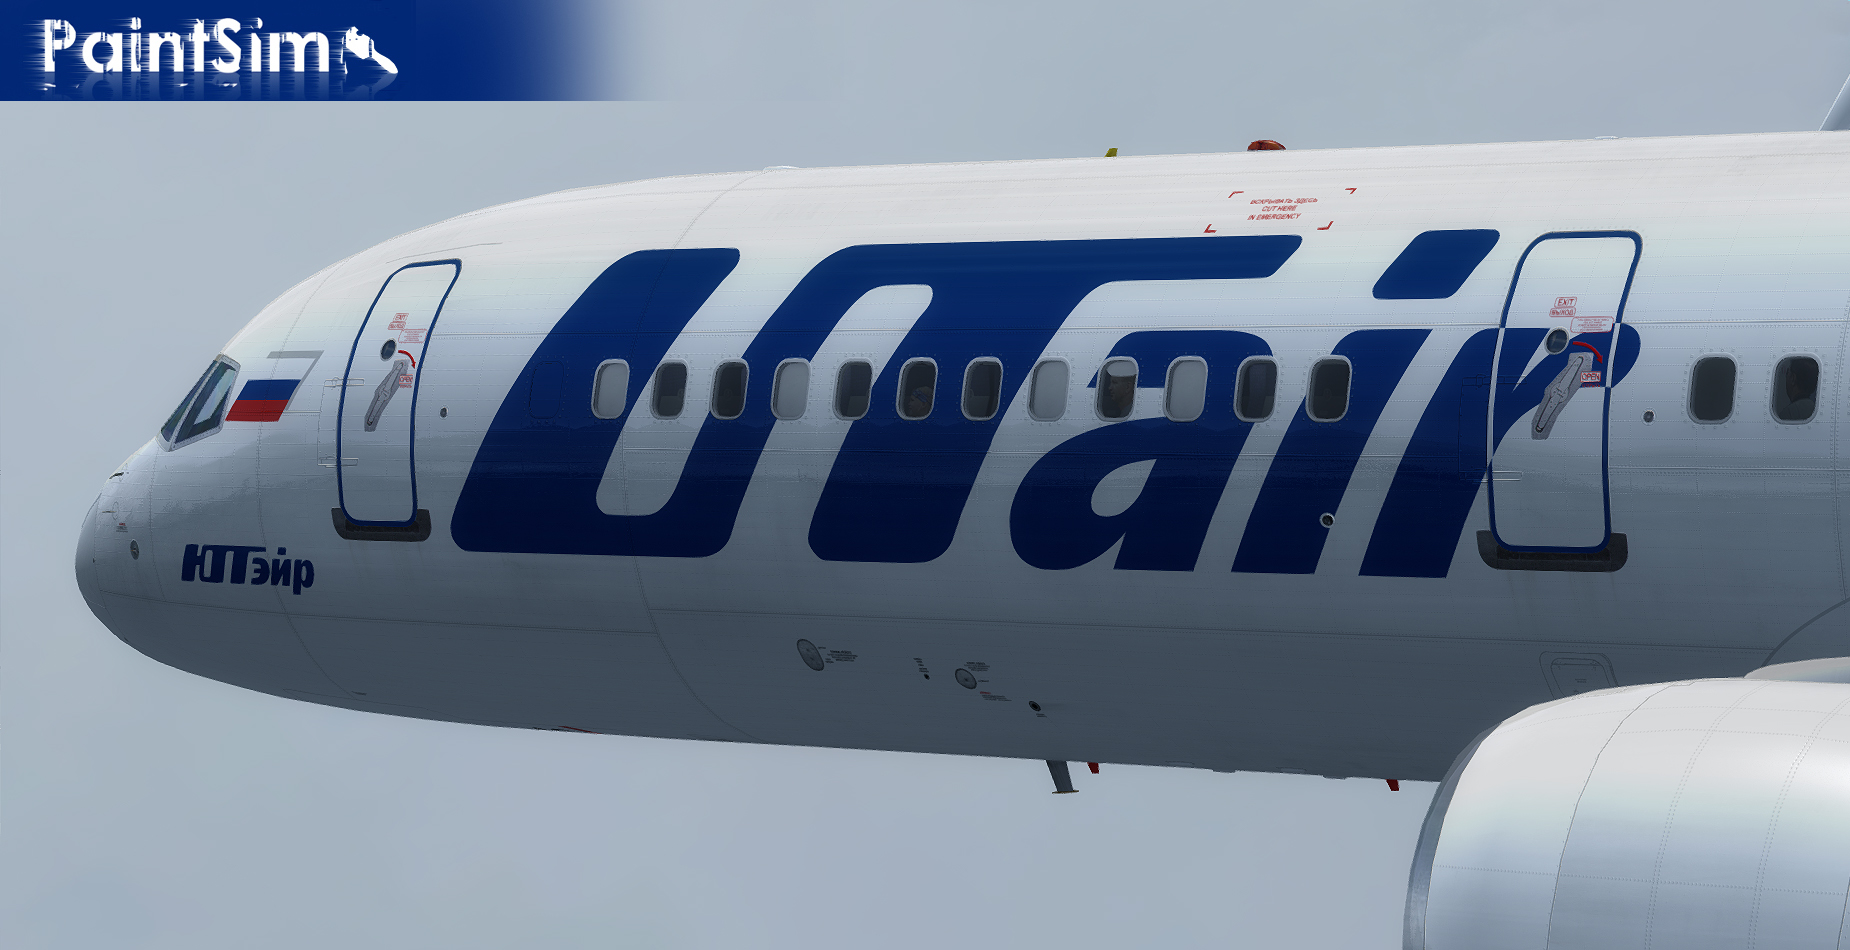 PAINTSIM - UHD TEXTURE PACK 4 FOR CAPTAIN SIM BOEING 757-200 III FSX P3D